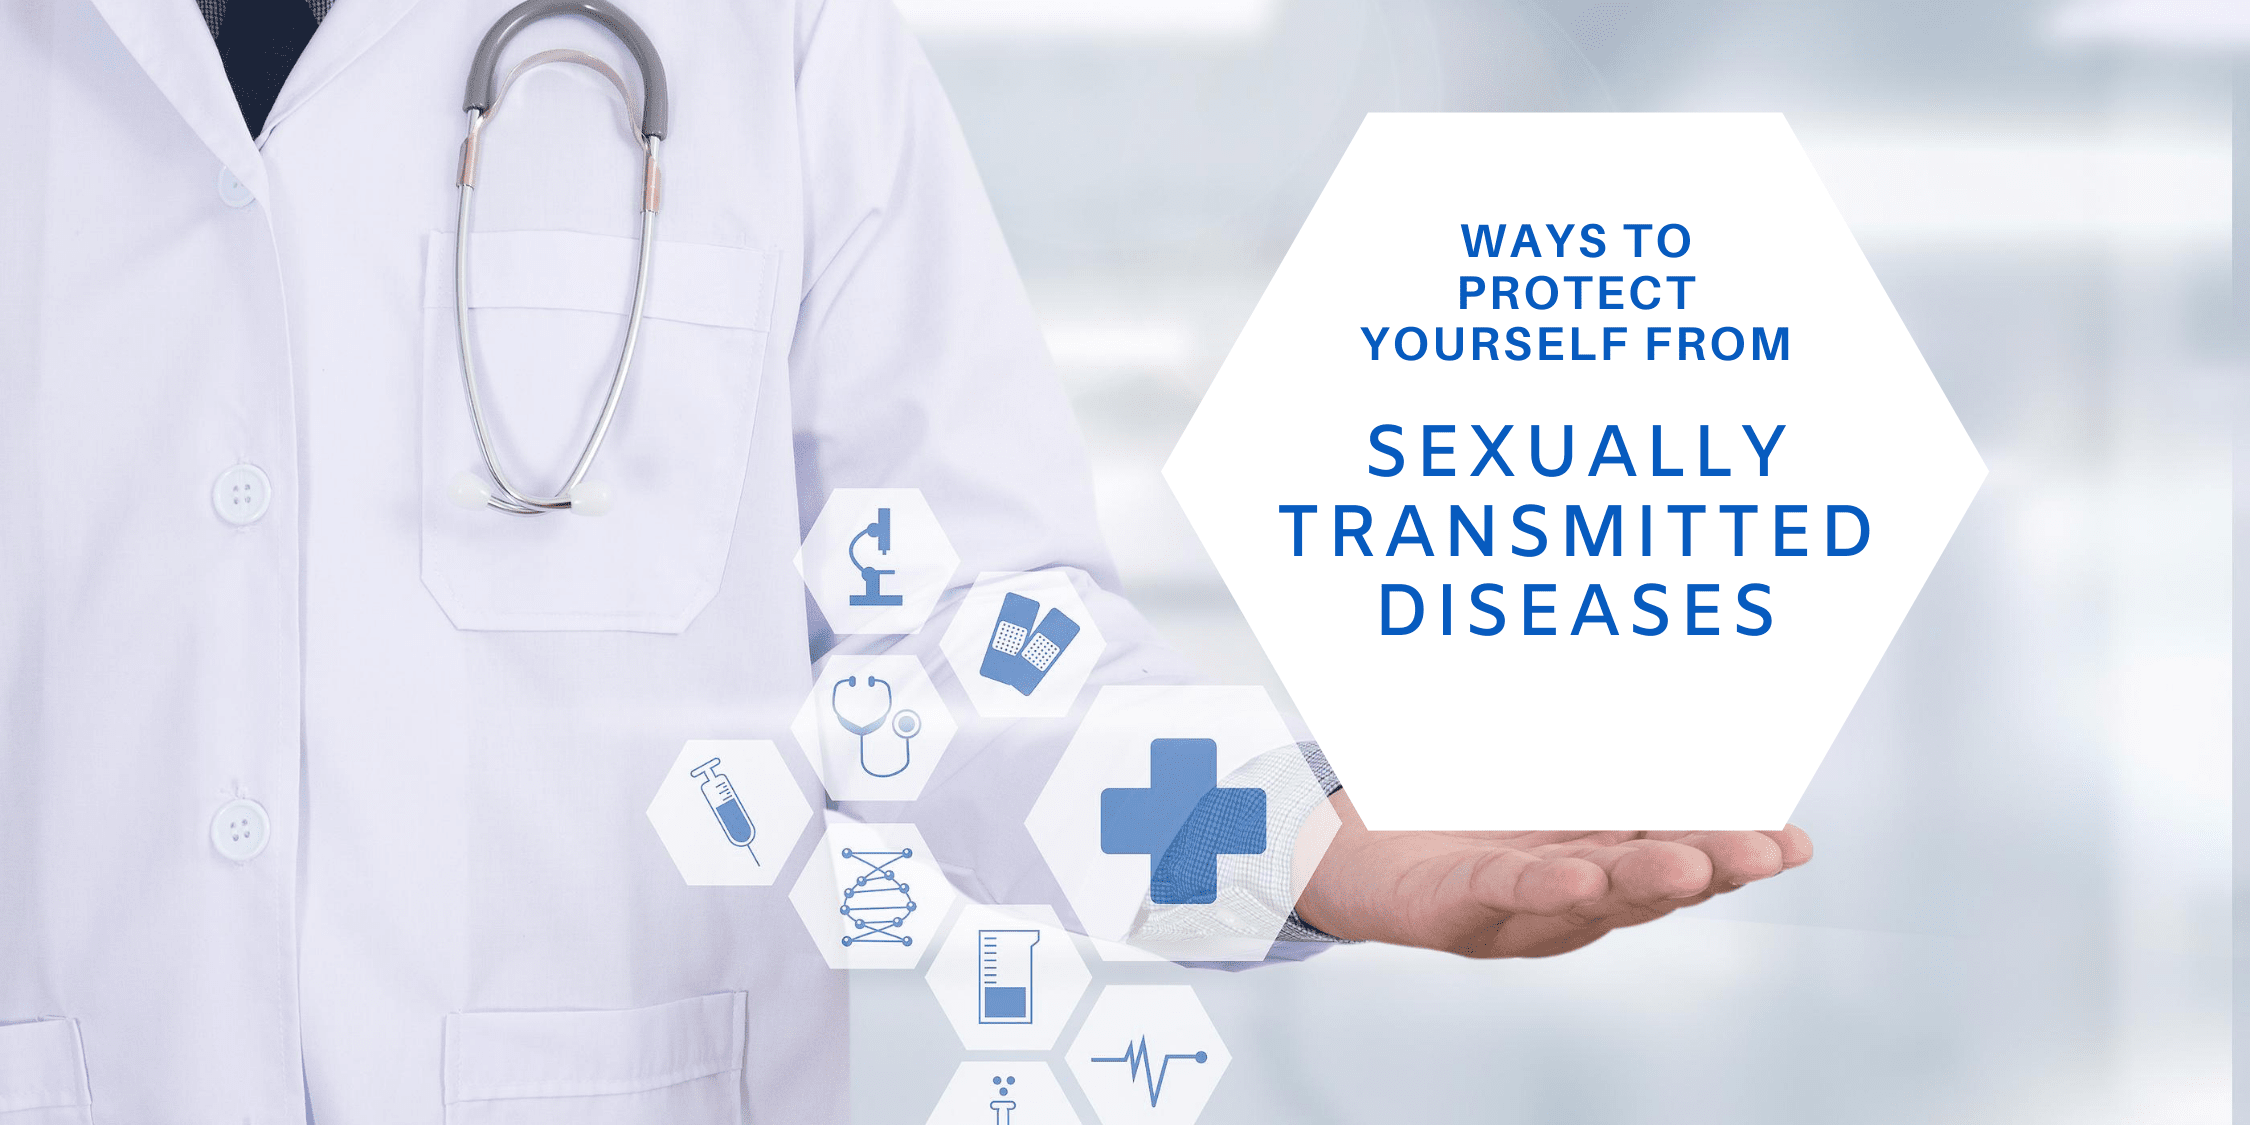 6 Suitable Ways to Stay Protected from Sexually Transmitted Diseases